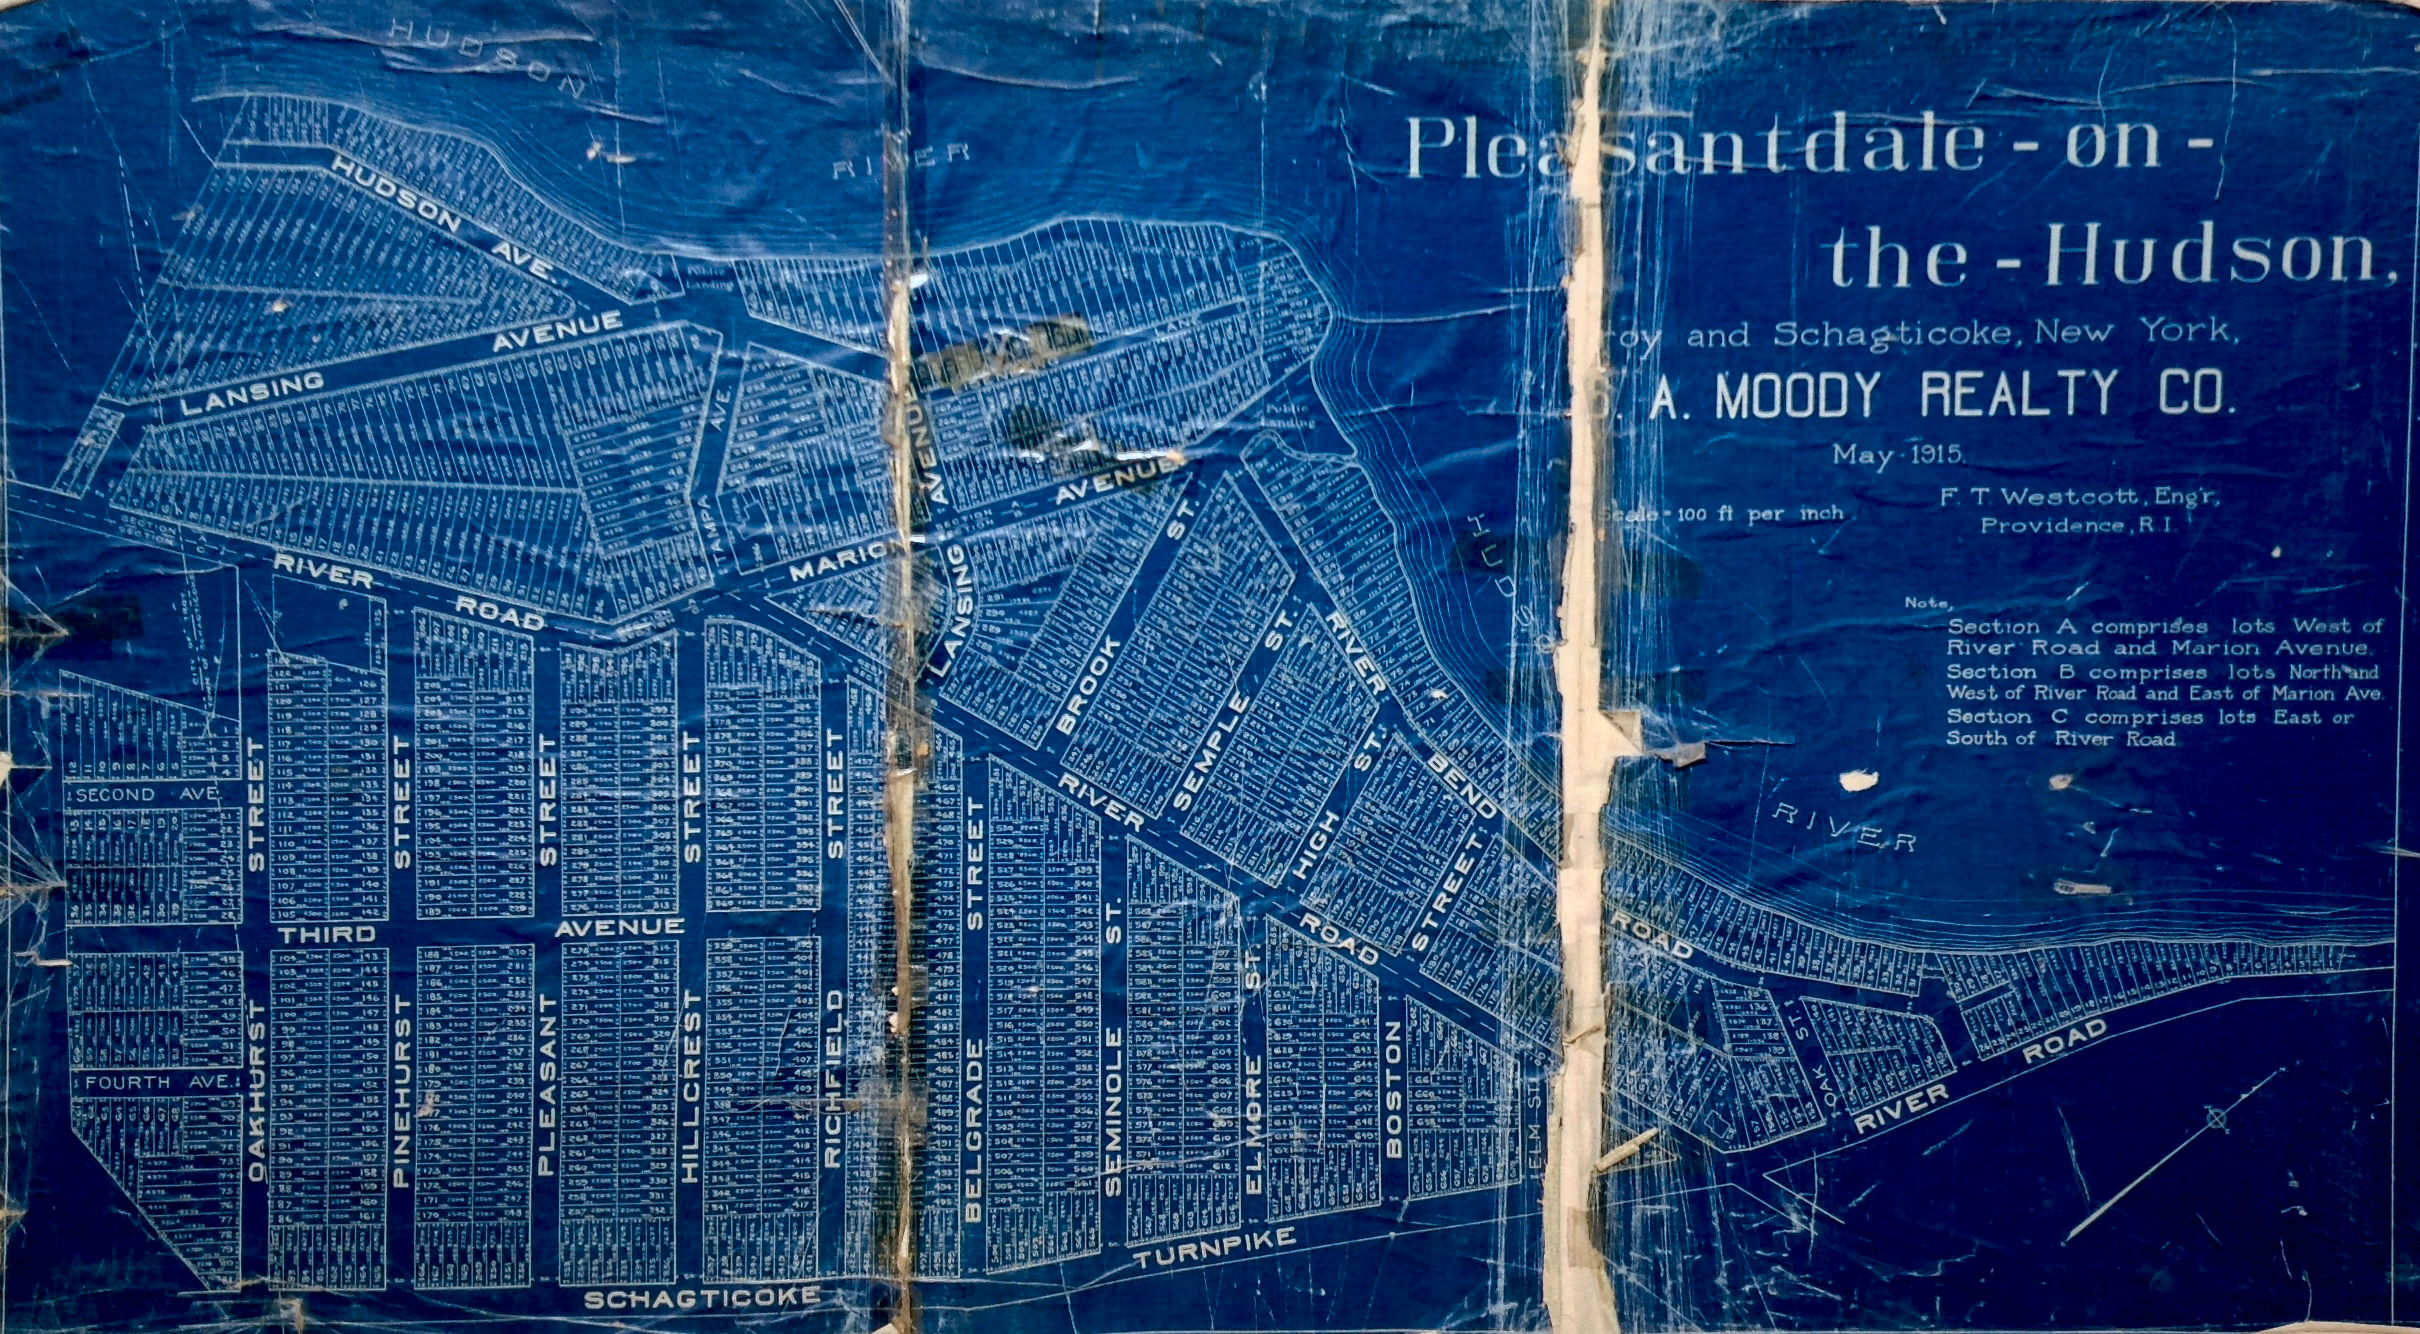 Pleasantdale-on-the-Hudson May 1915 blueprint by F. T. Westcott, Engineer, Providence, Rhode Island